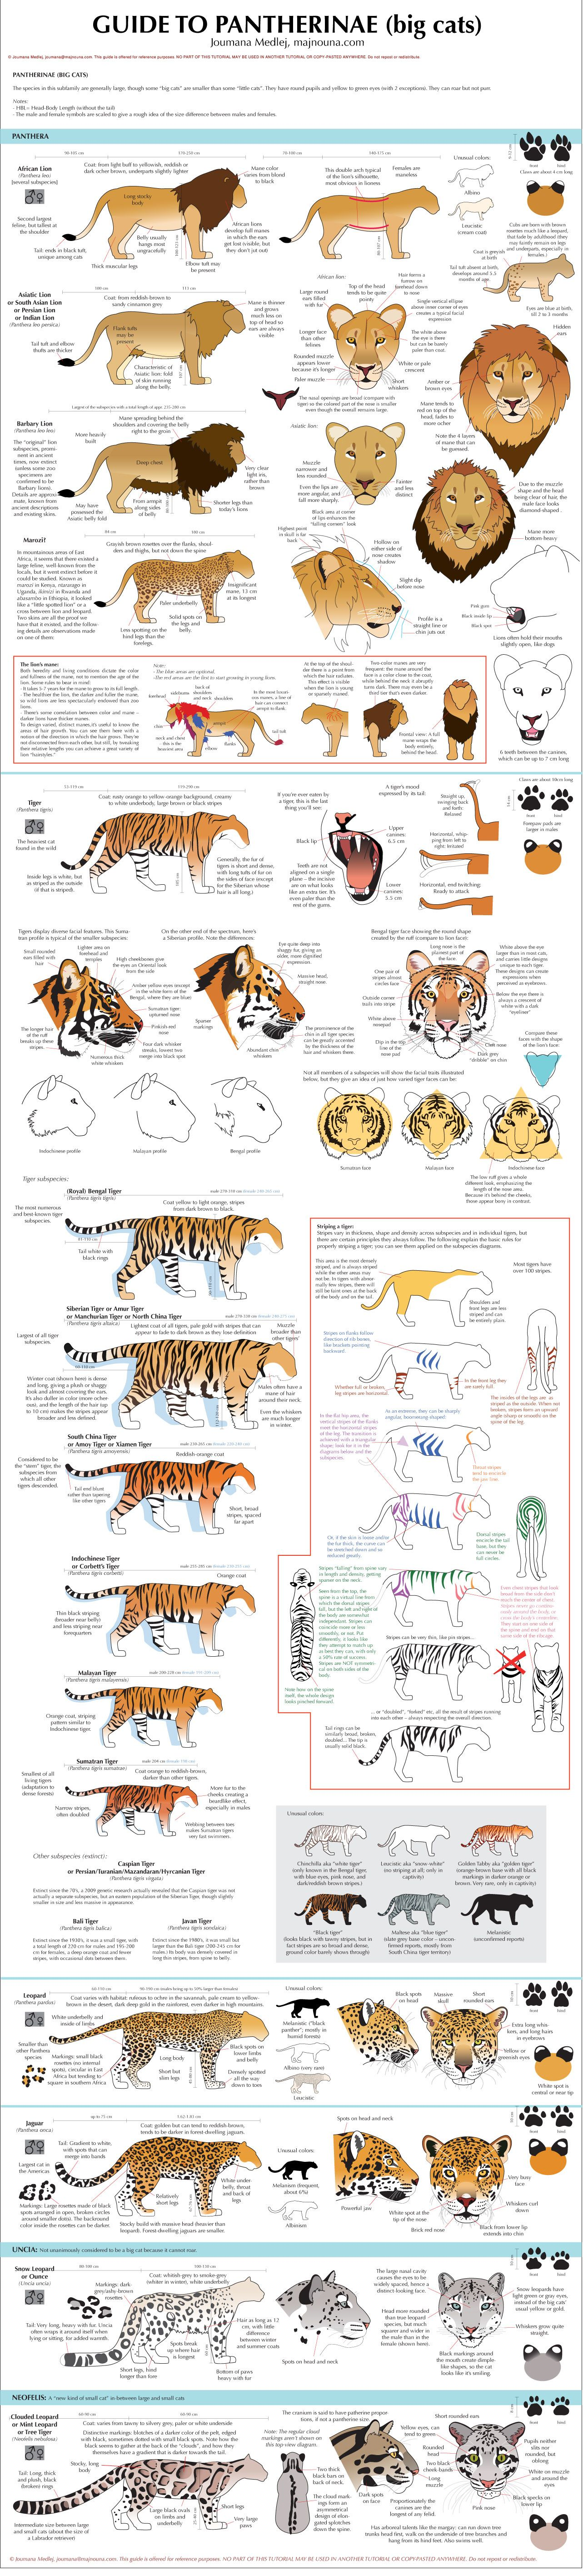 Guide To Big Cats By Majnouna On Deviantart Character